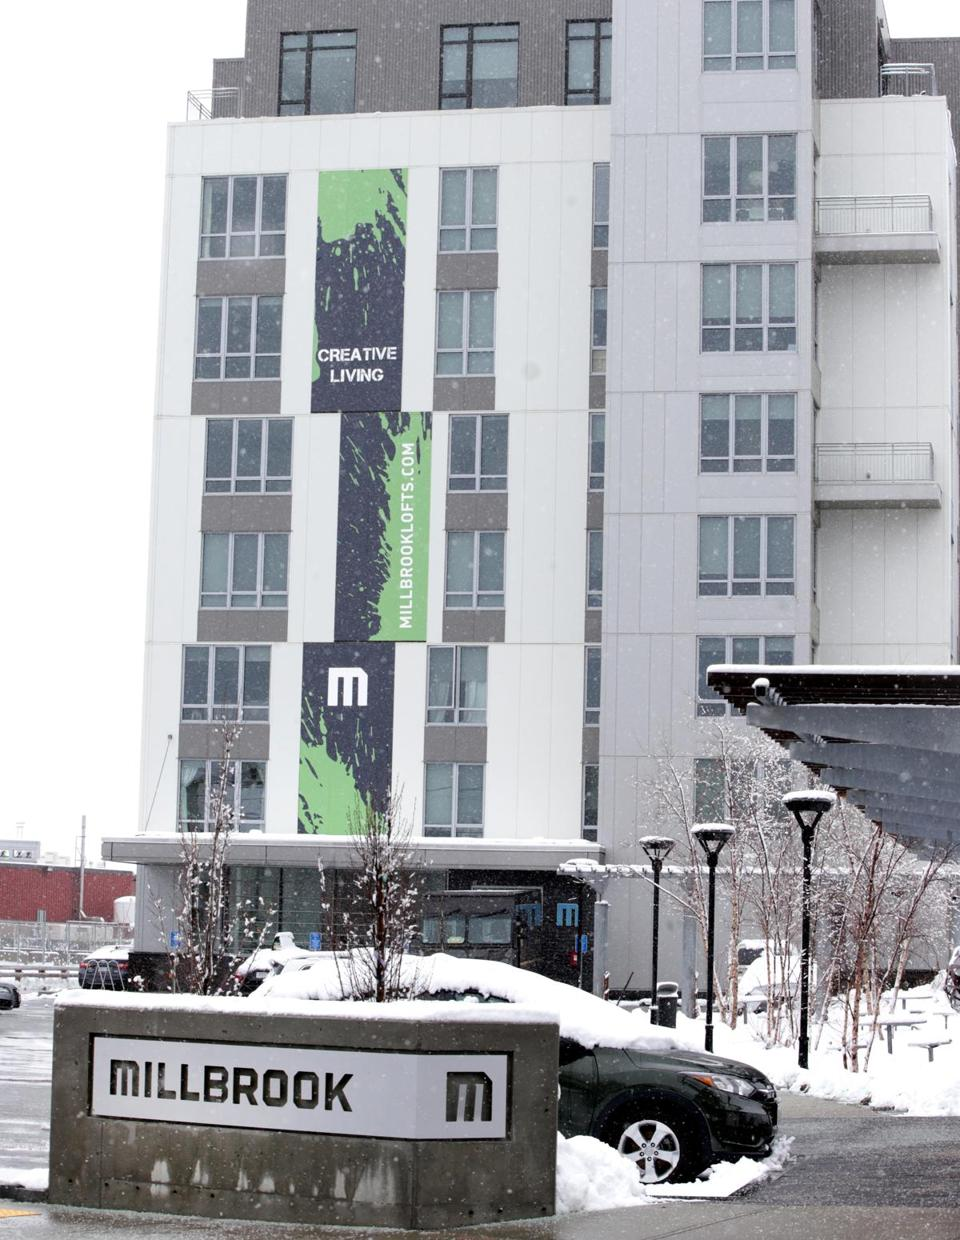 Millbrook Lofts is an upscale 100-unit complex in Somerville on the East Cambridge line.